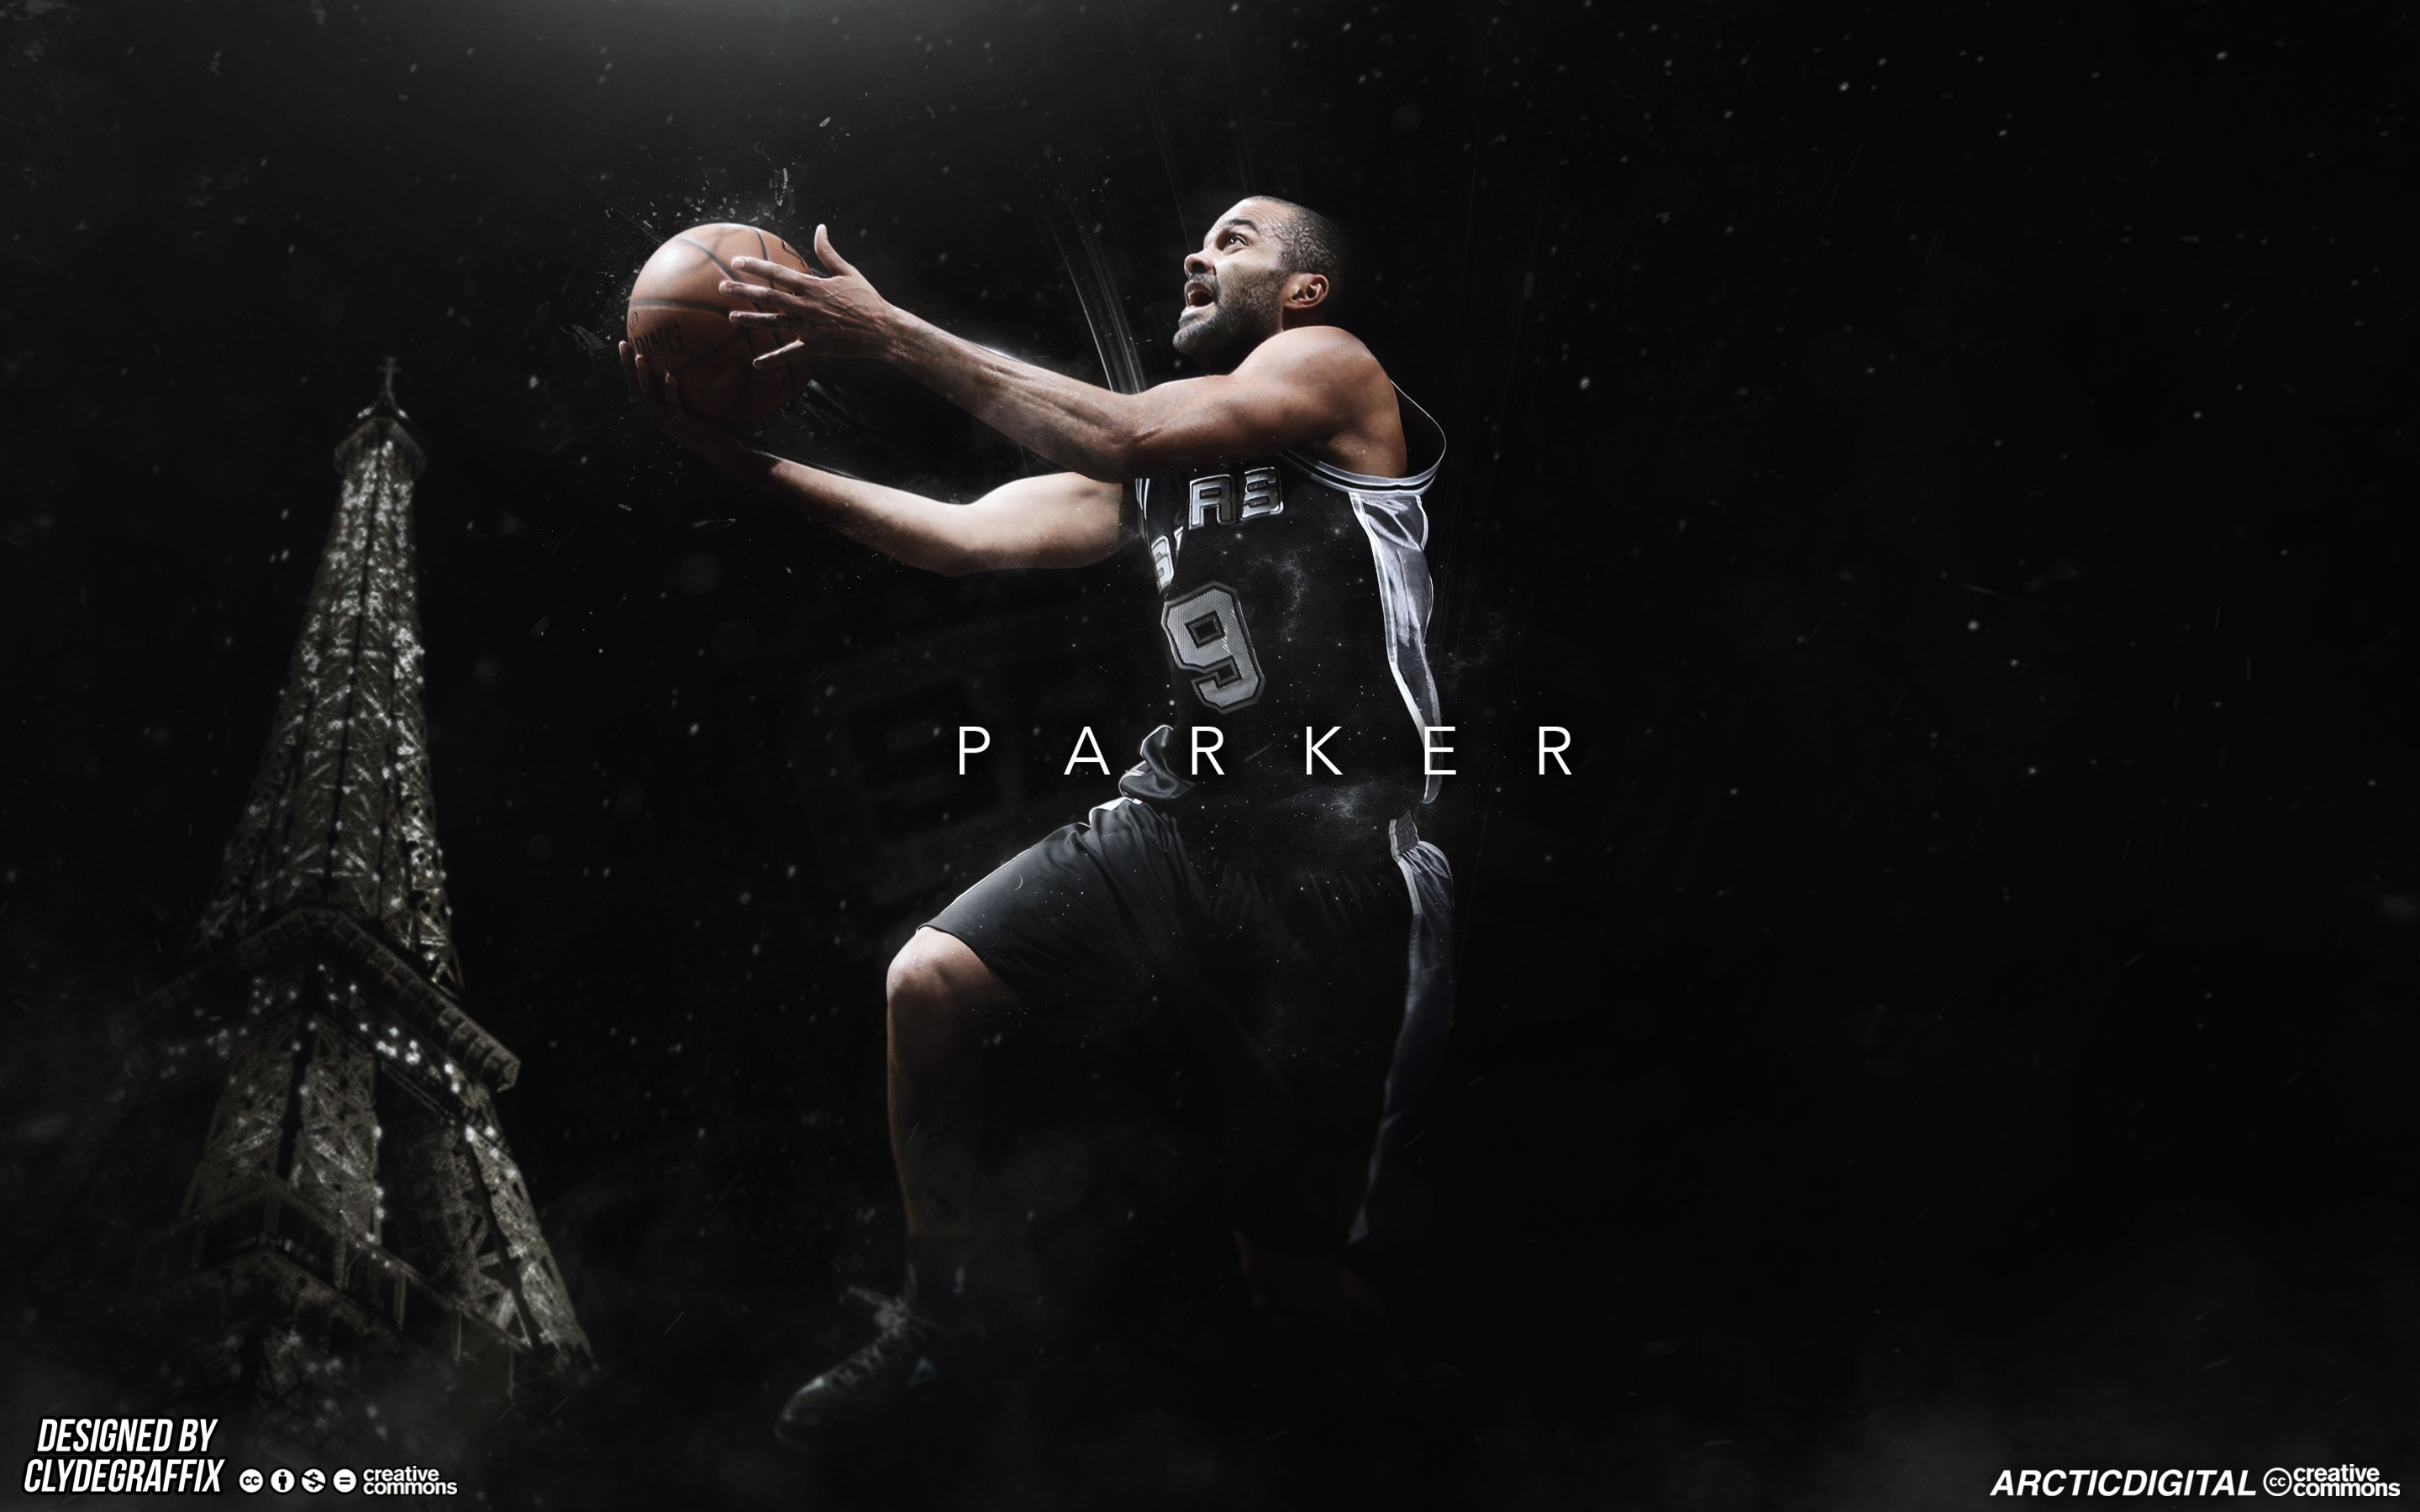 Tony Parker San Antonio Spurs 2015 Wallpaper